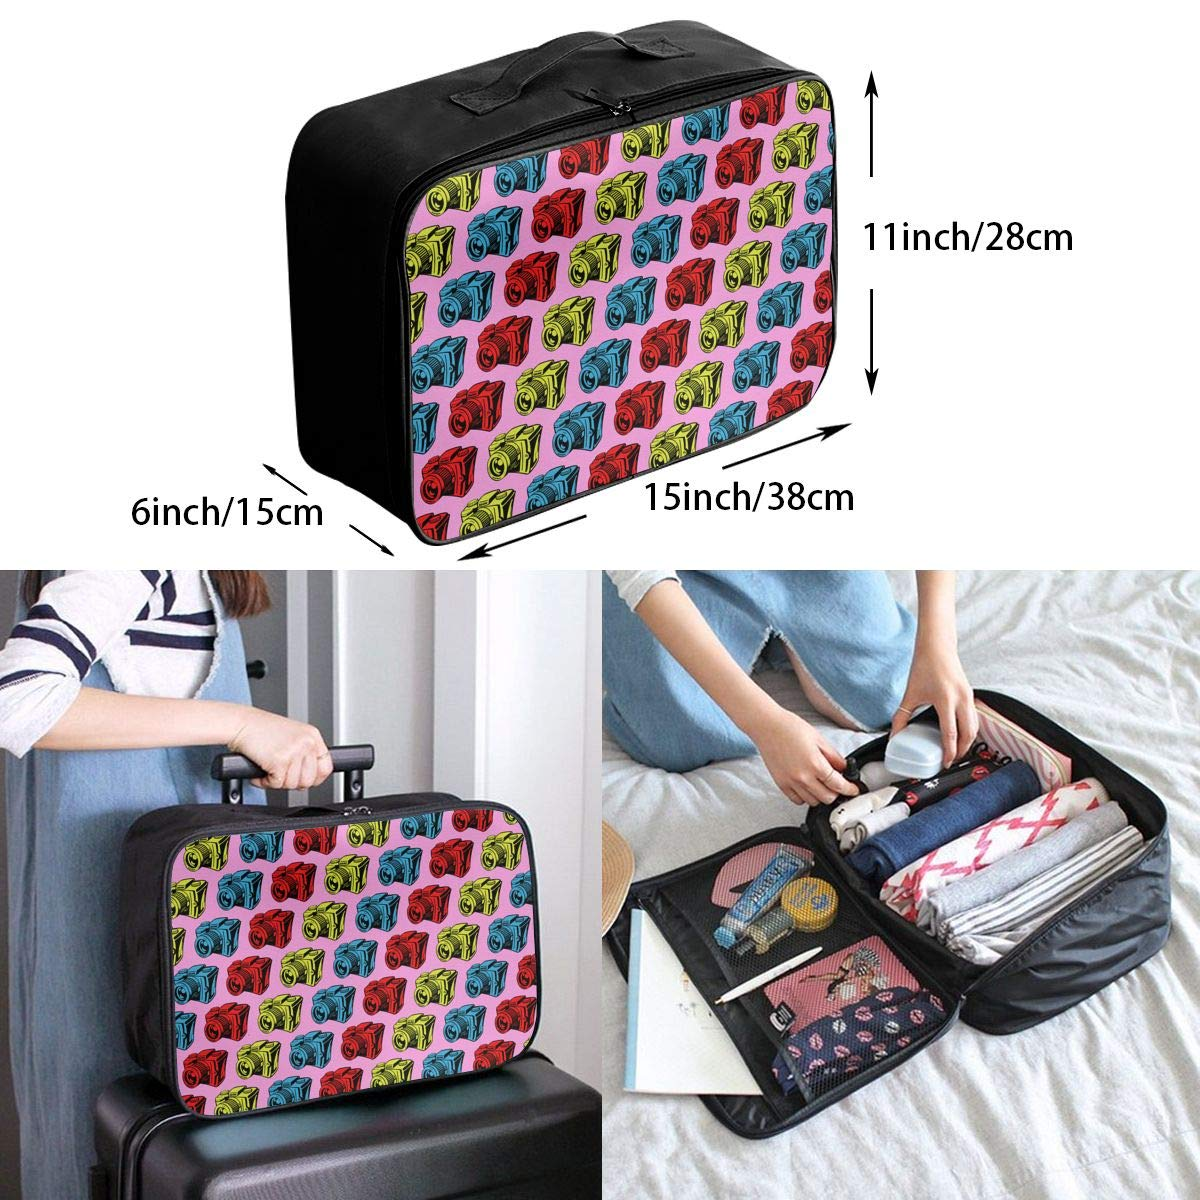 YueLJB Vintage Camera Pop Art Lightweight Large Capacity Portable Luggage Bag Travel Duffel Bag Storage Carry Luggage Duffle Tote Bag